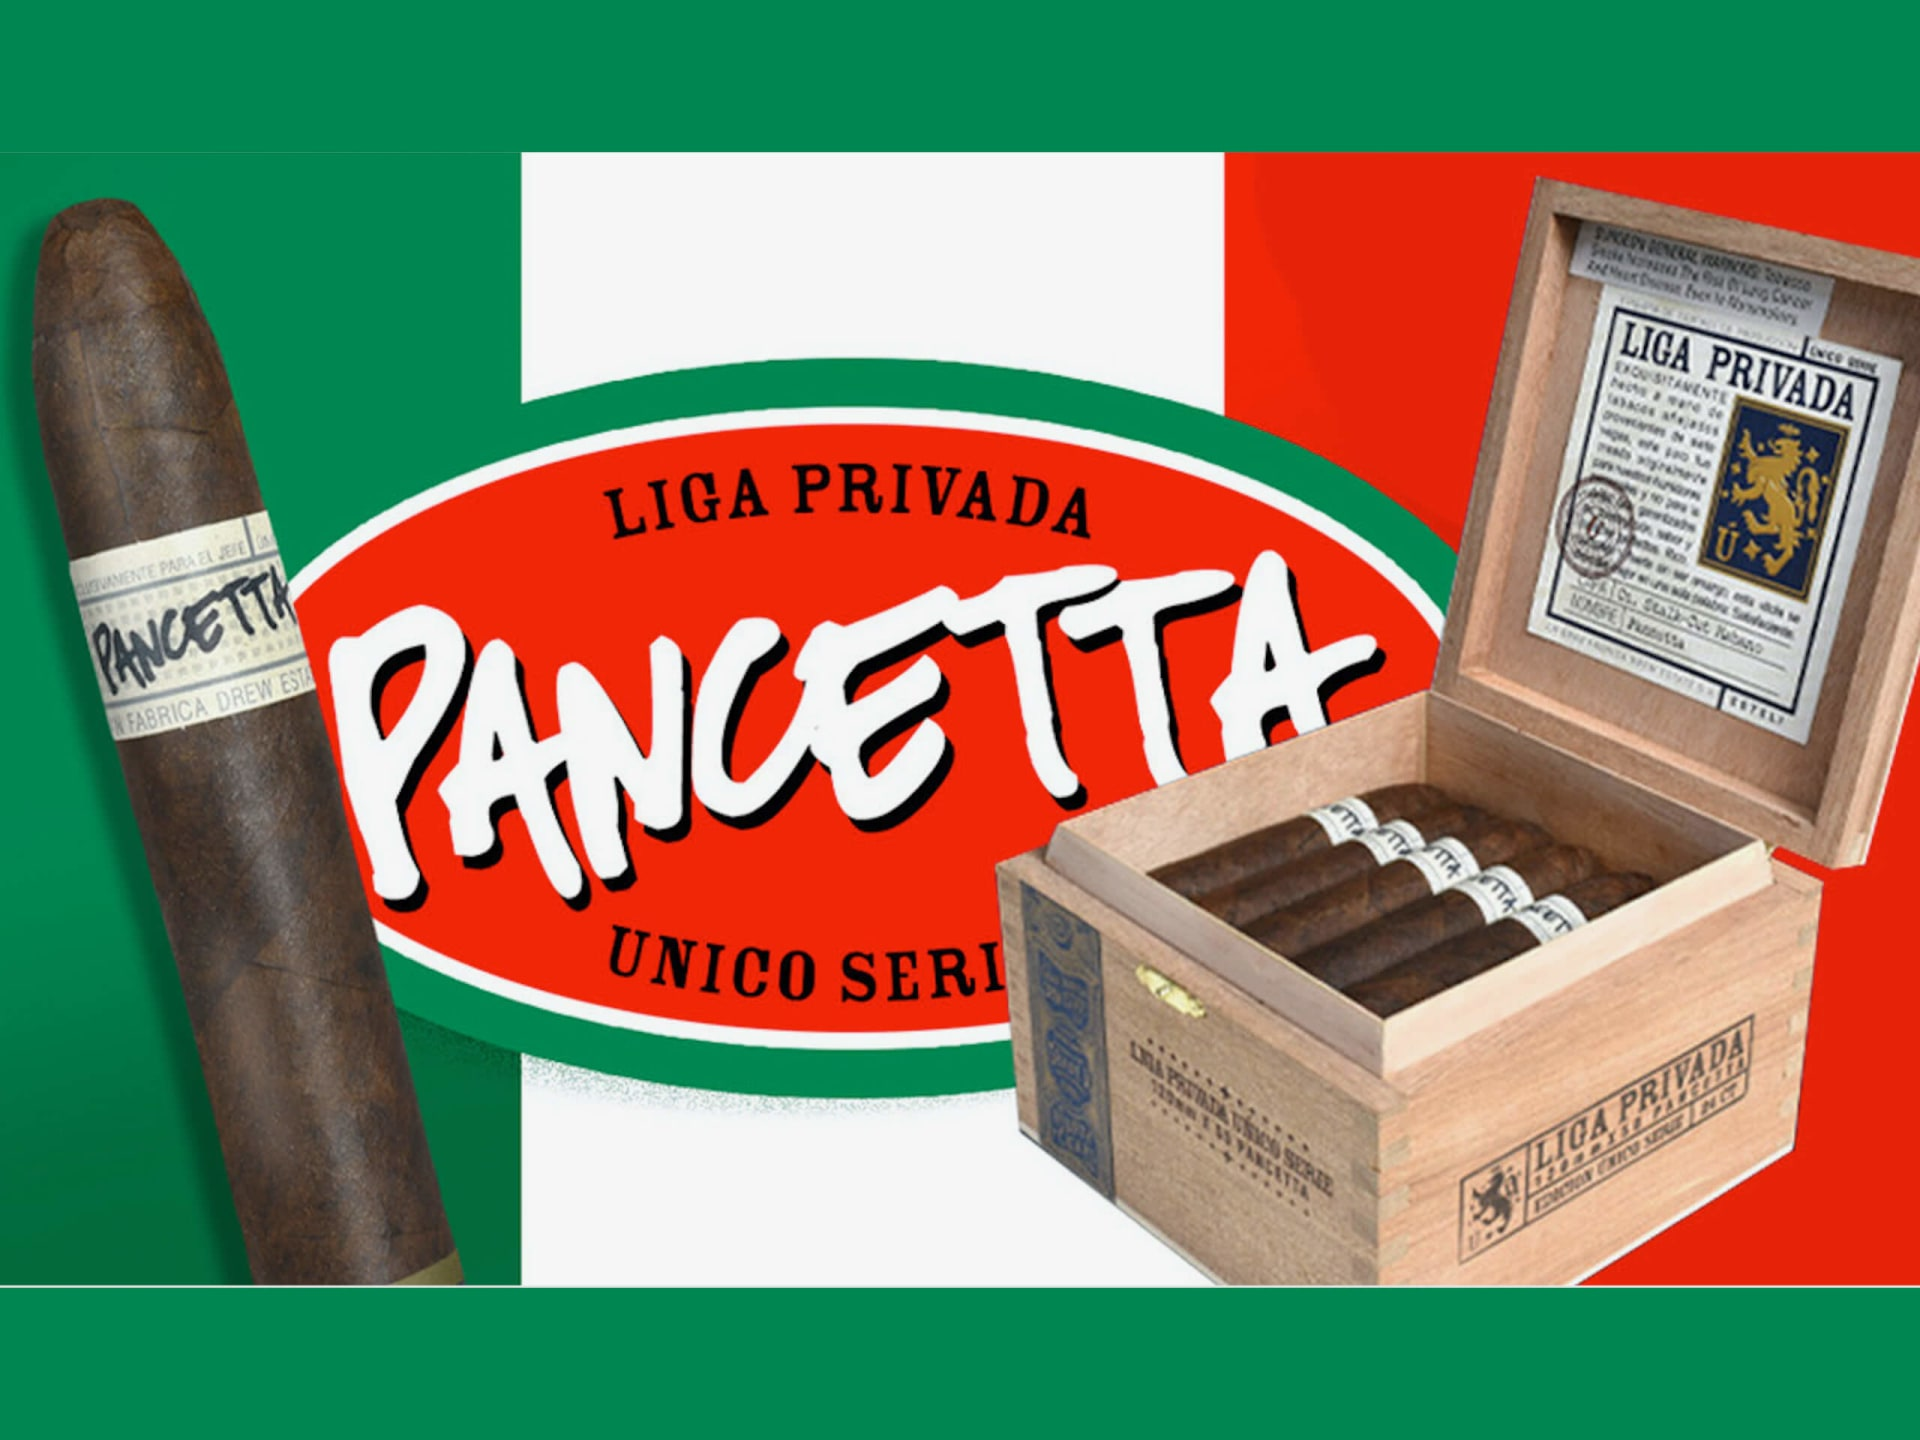 Liga Privada Unico Serie Pancetta Returns Featured Image